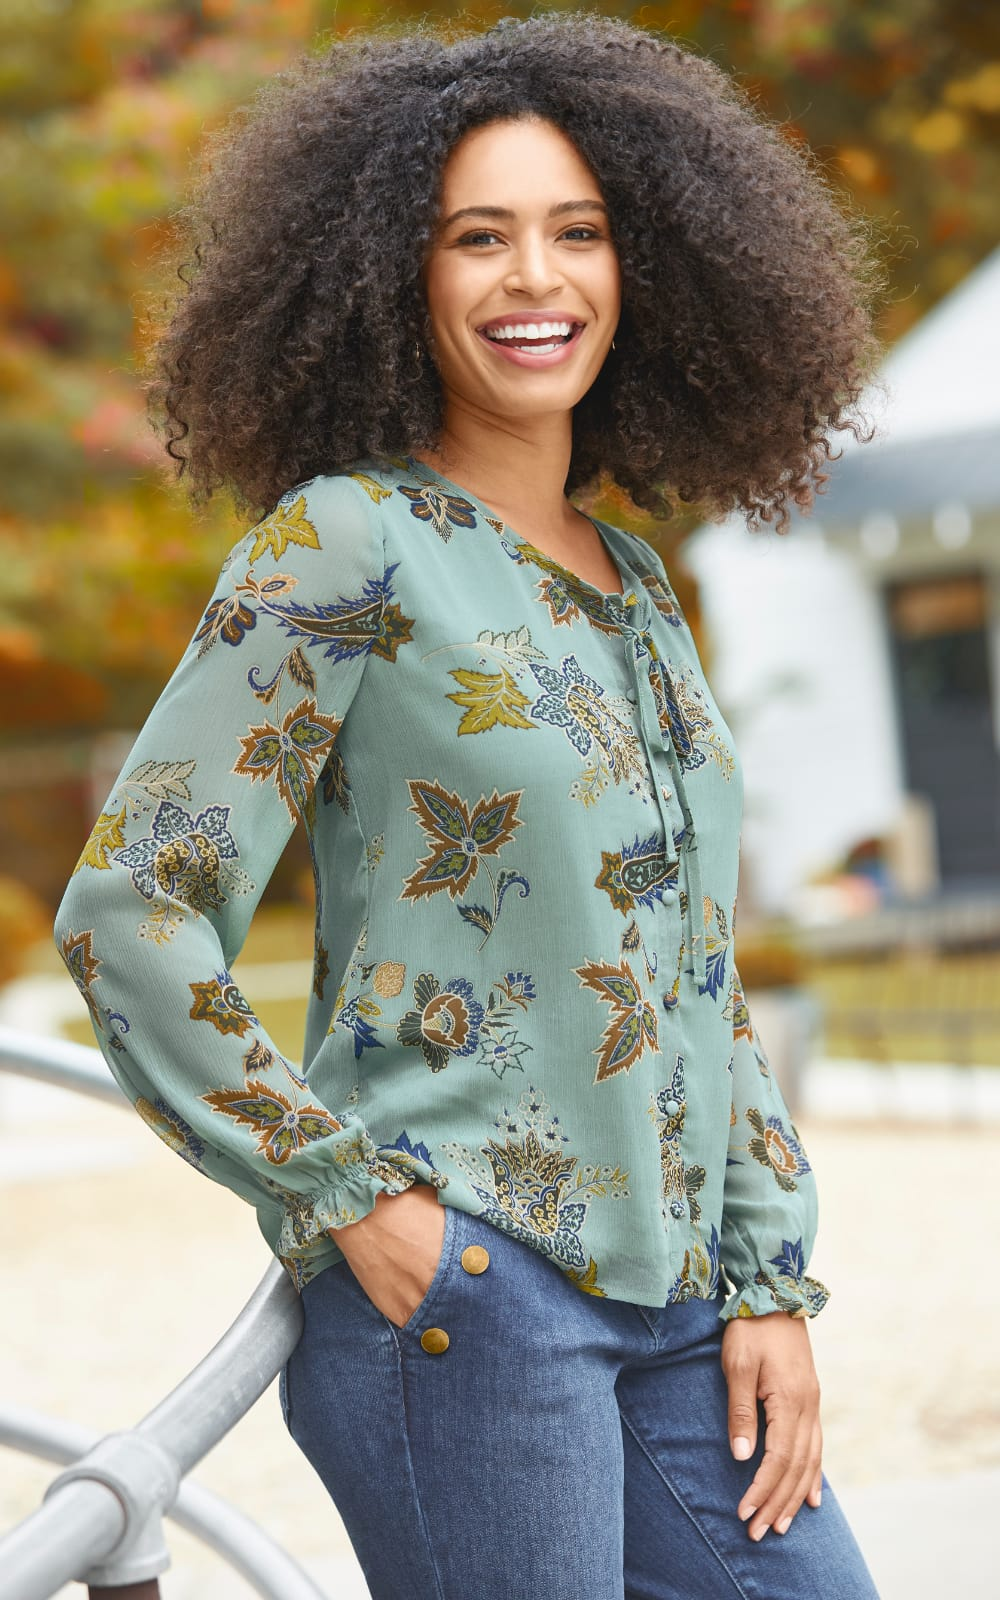 """Our """"Pretty-in-Prints"""" Outfit featuring our Spaced Floral Printed Blouse, Button Detail Straight Jean Average Shaped Fit, and Cutout Leaf Earrings."""